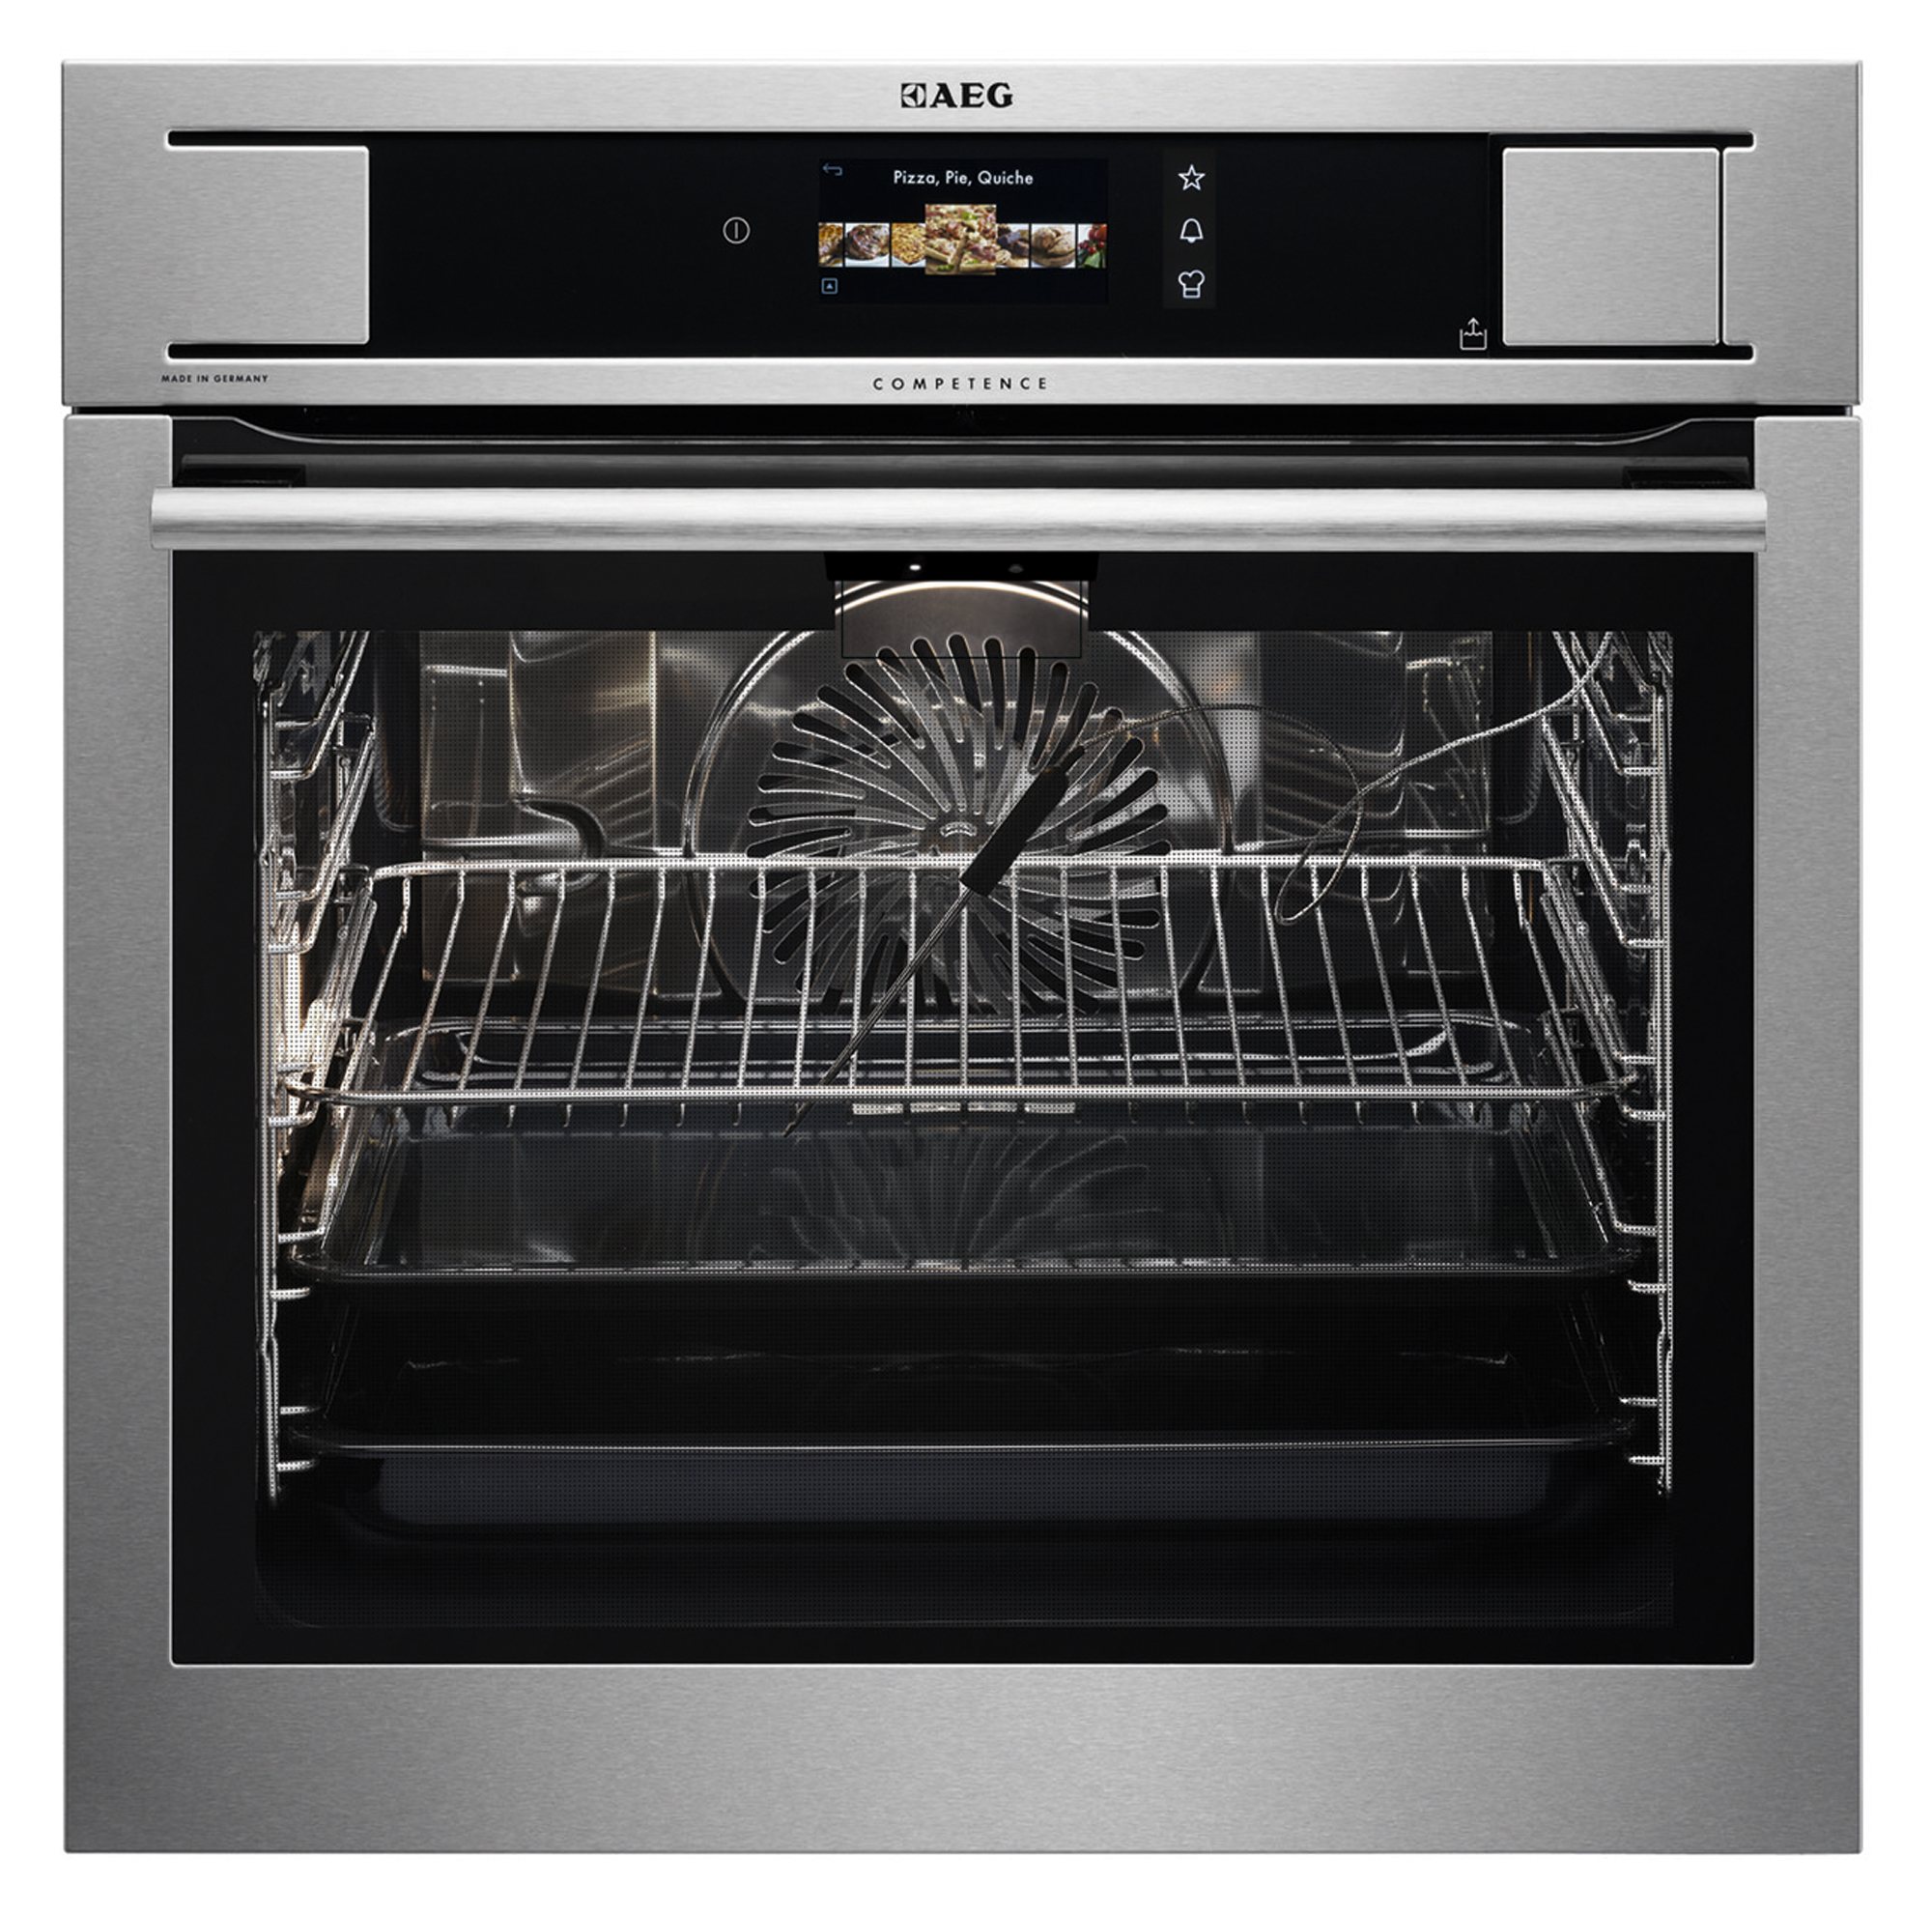 AEG Backofen ProCombi Plus Smart – CookViewKamera, My AEG App